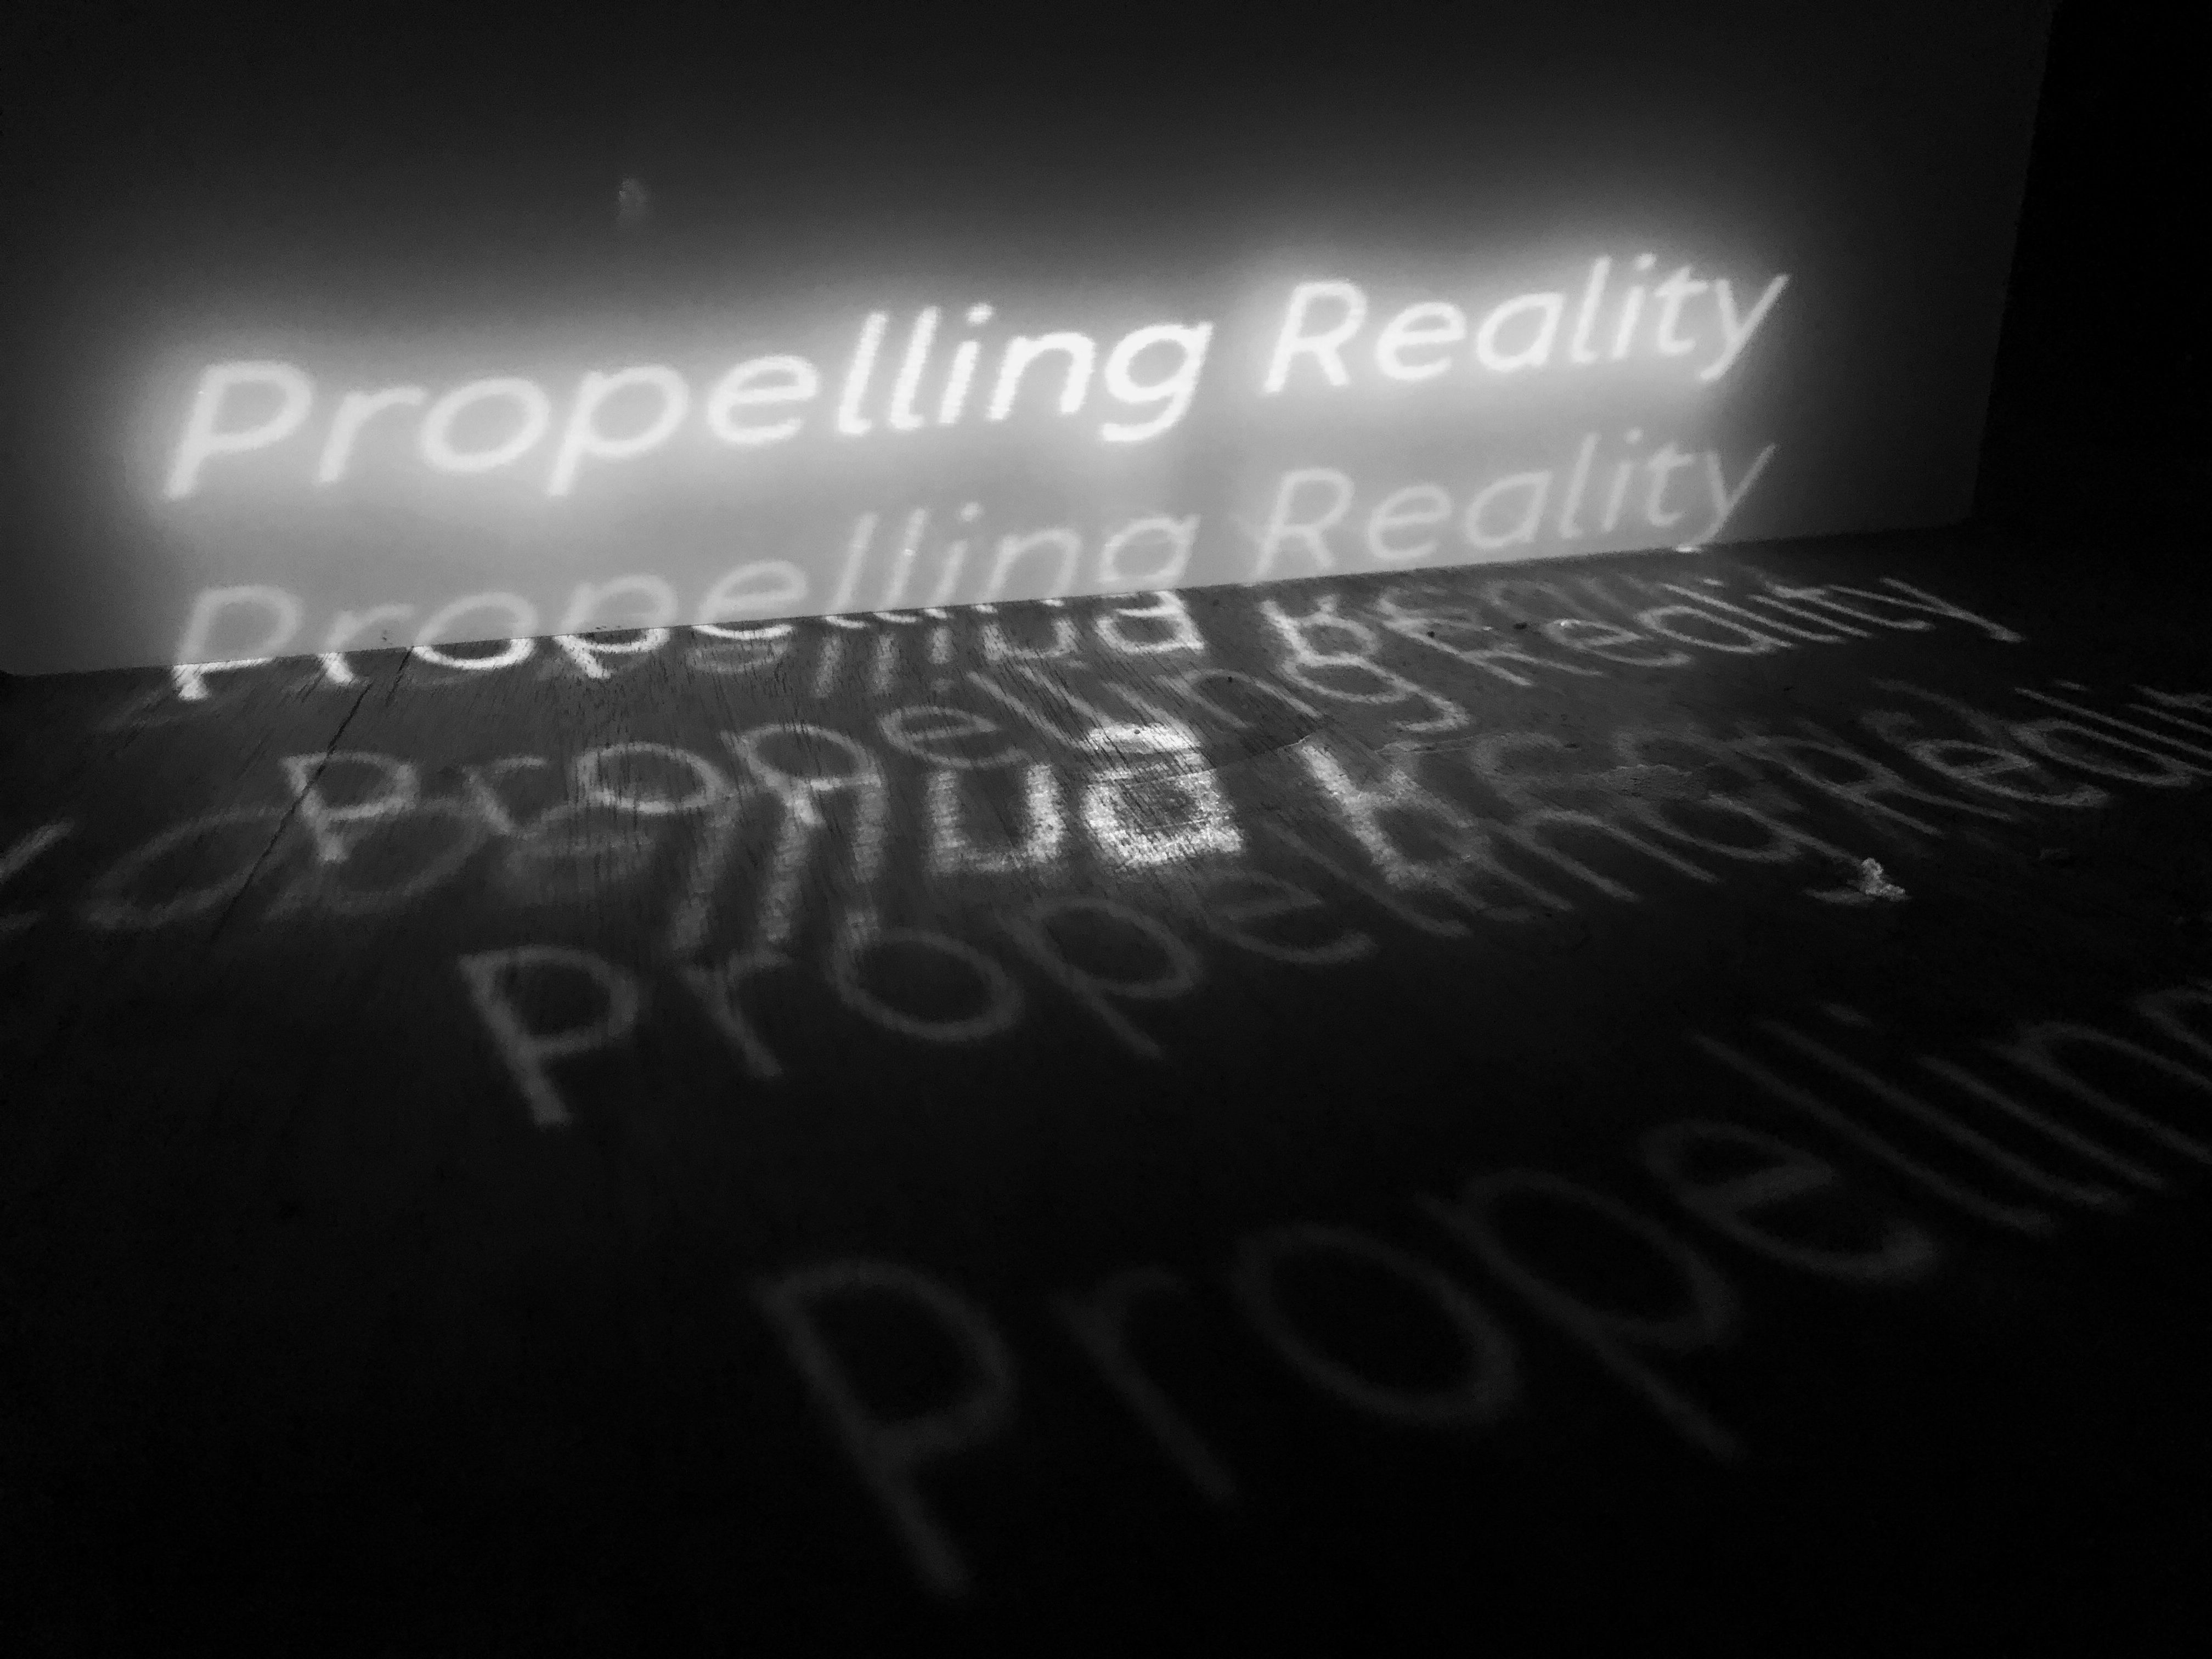 Propelling Reality